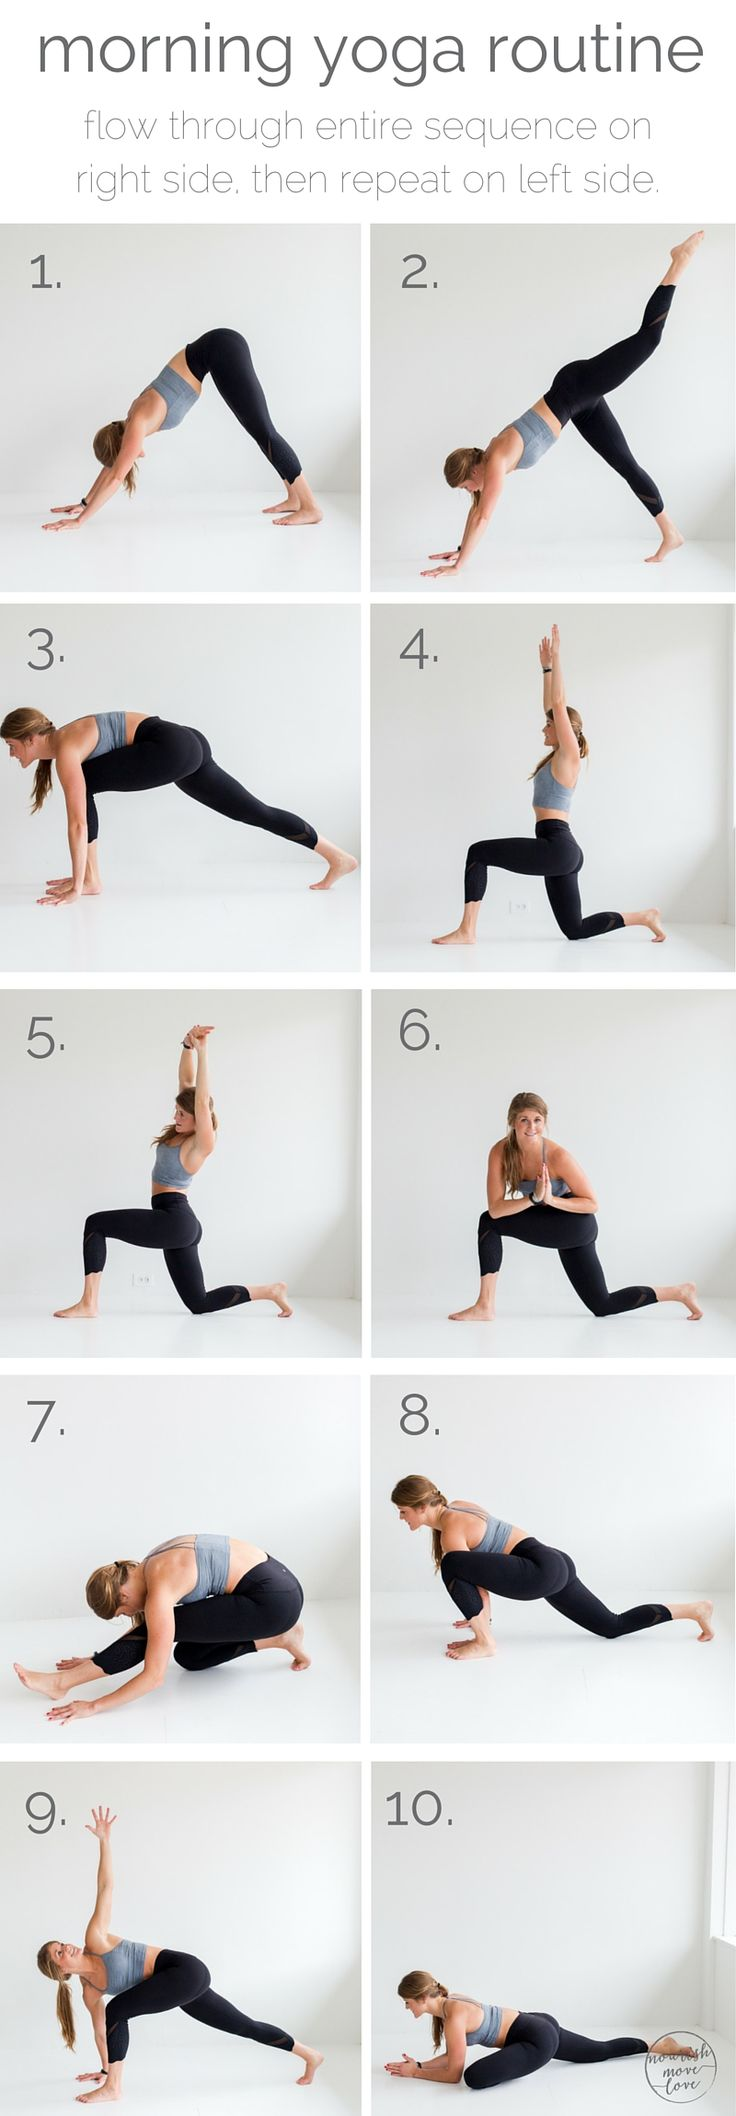 10 morning yoga poses that will make you feel totally energized while decreasing...